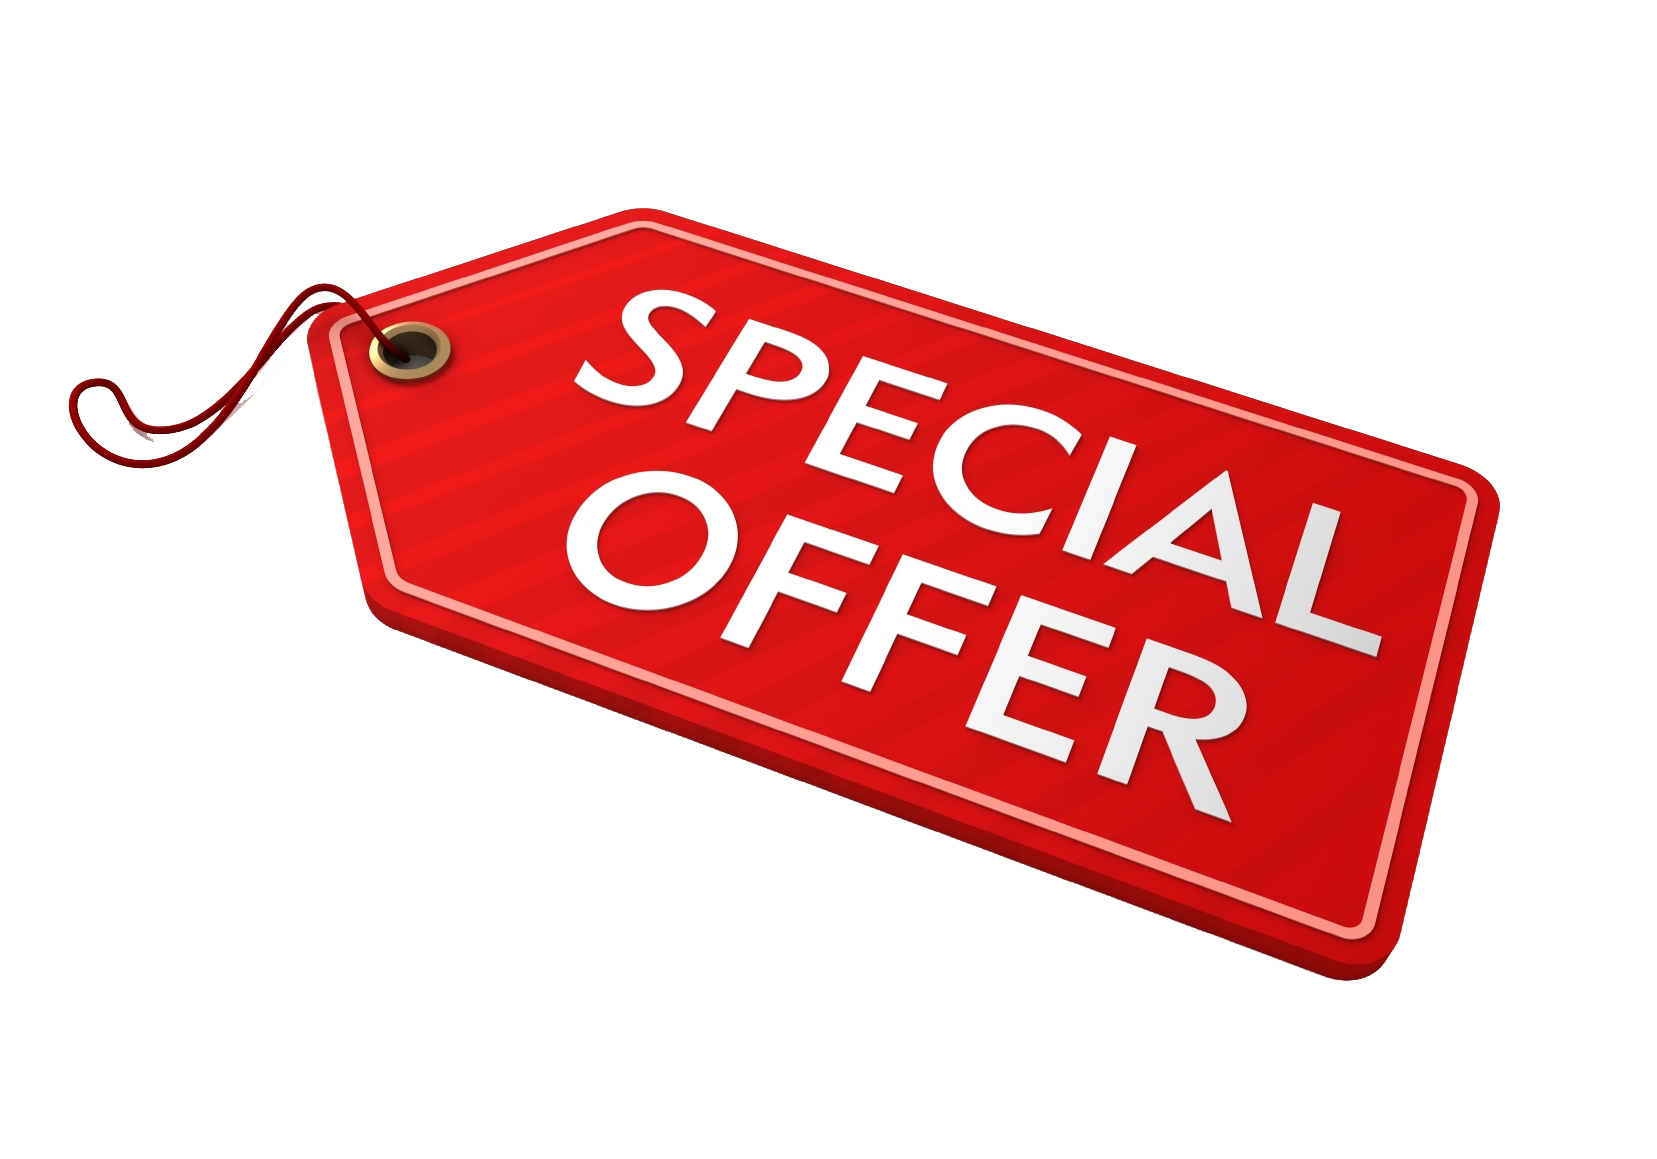 Special Offer Download Png PNG Image - Special Offer PNG